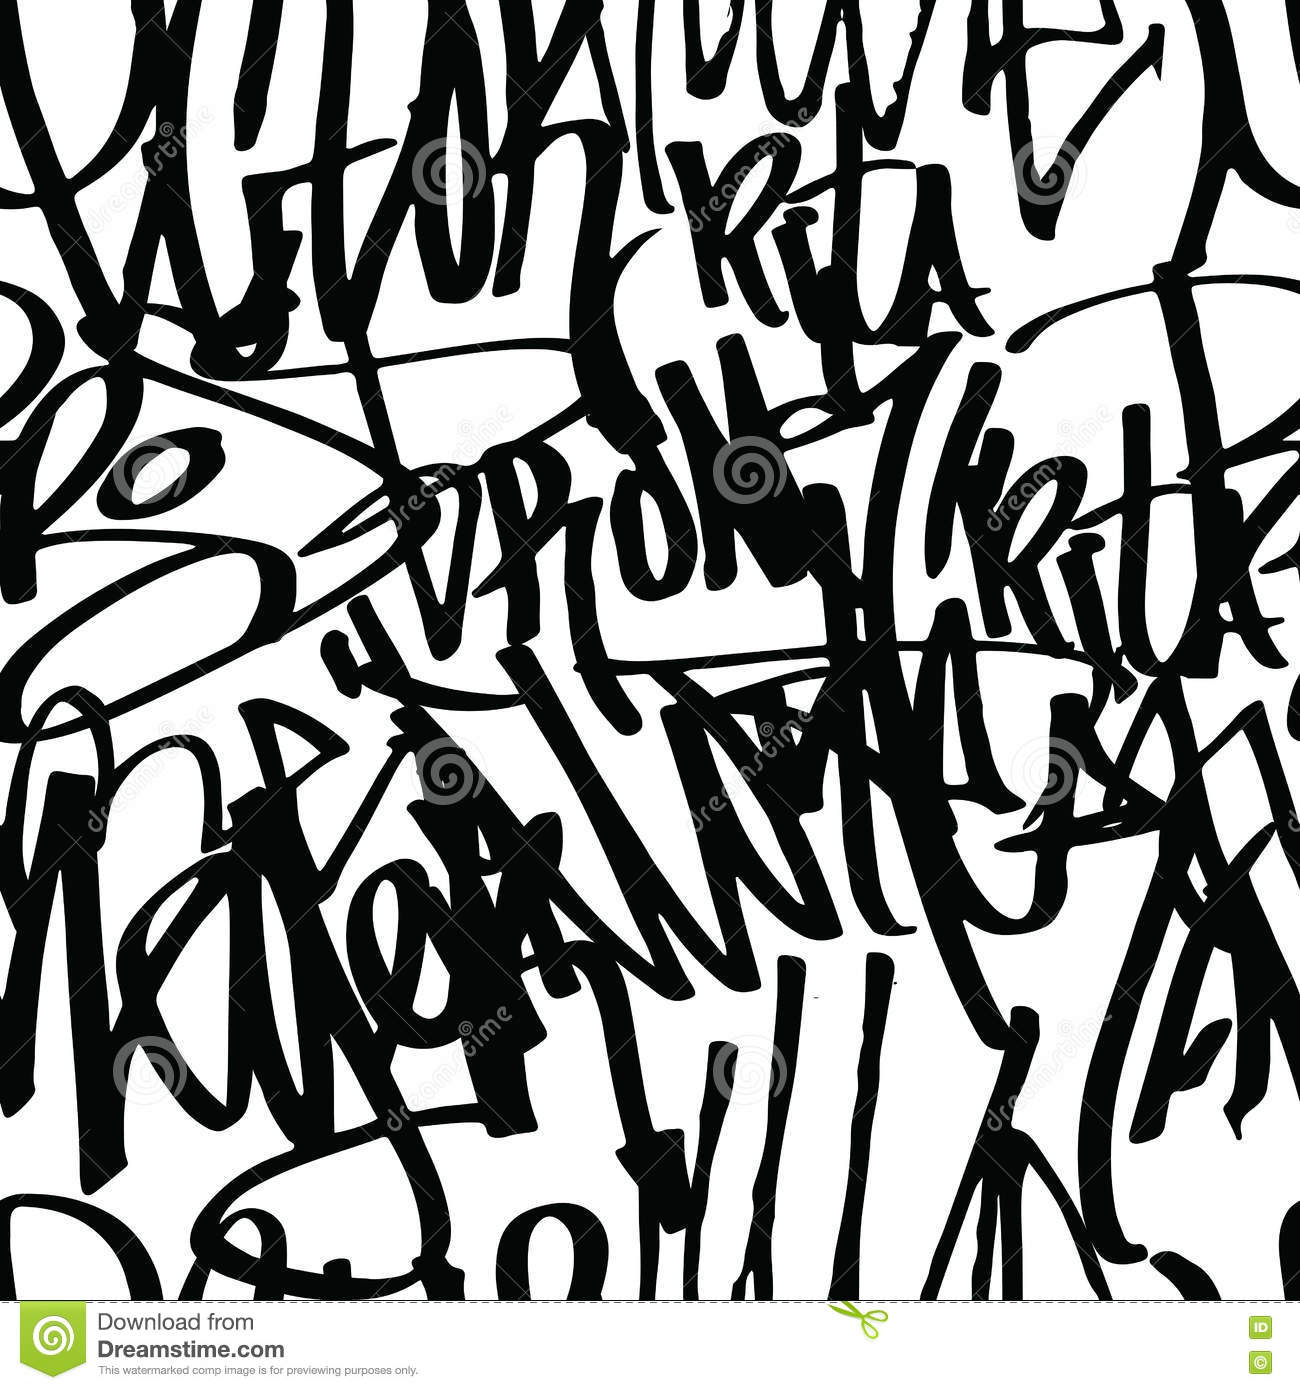 Graffiti background seamless pattern vector tags writing graffiti hand style old school street art texture monochrome black and white colors